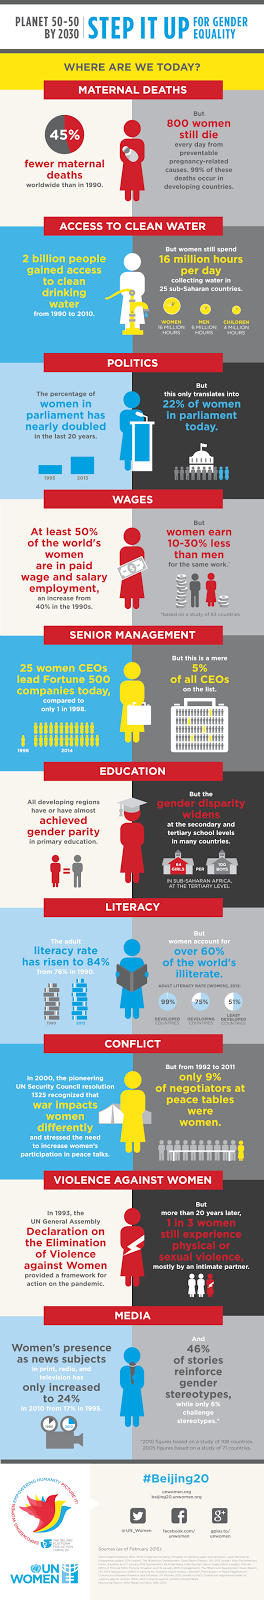 Gender Equality - Where are we today?